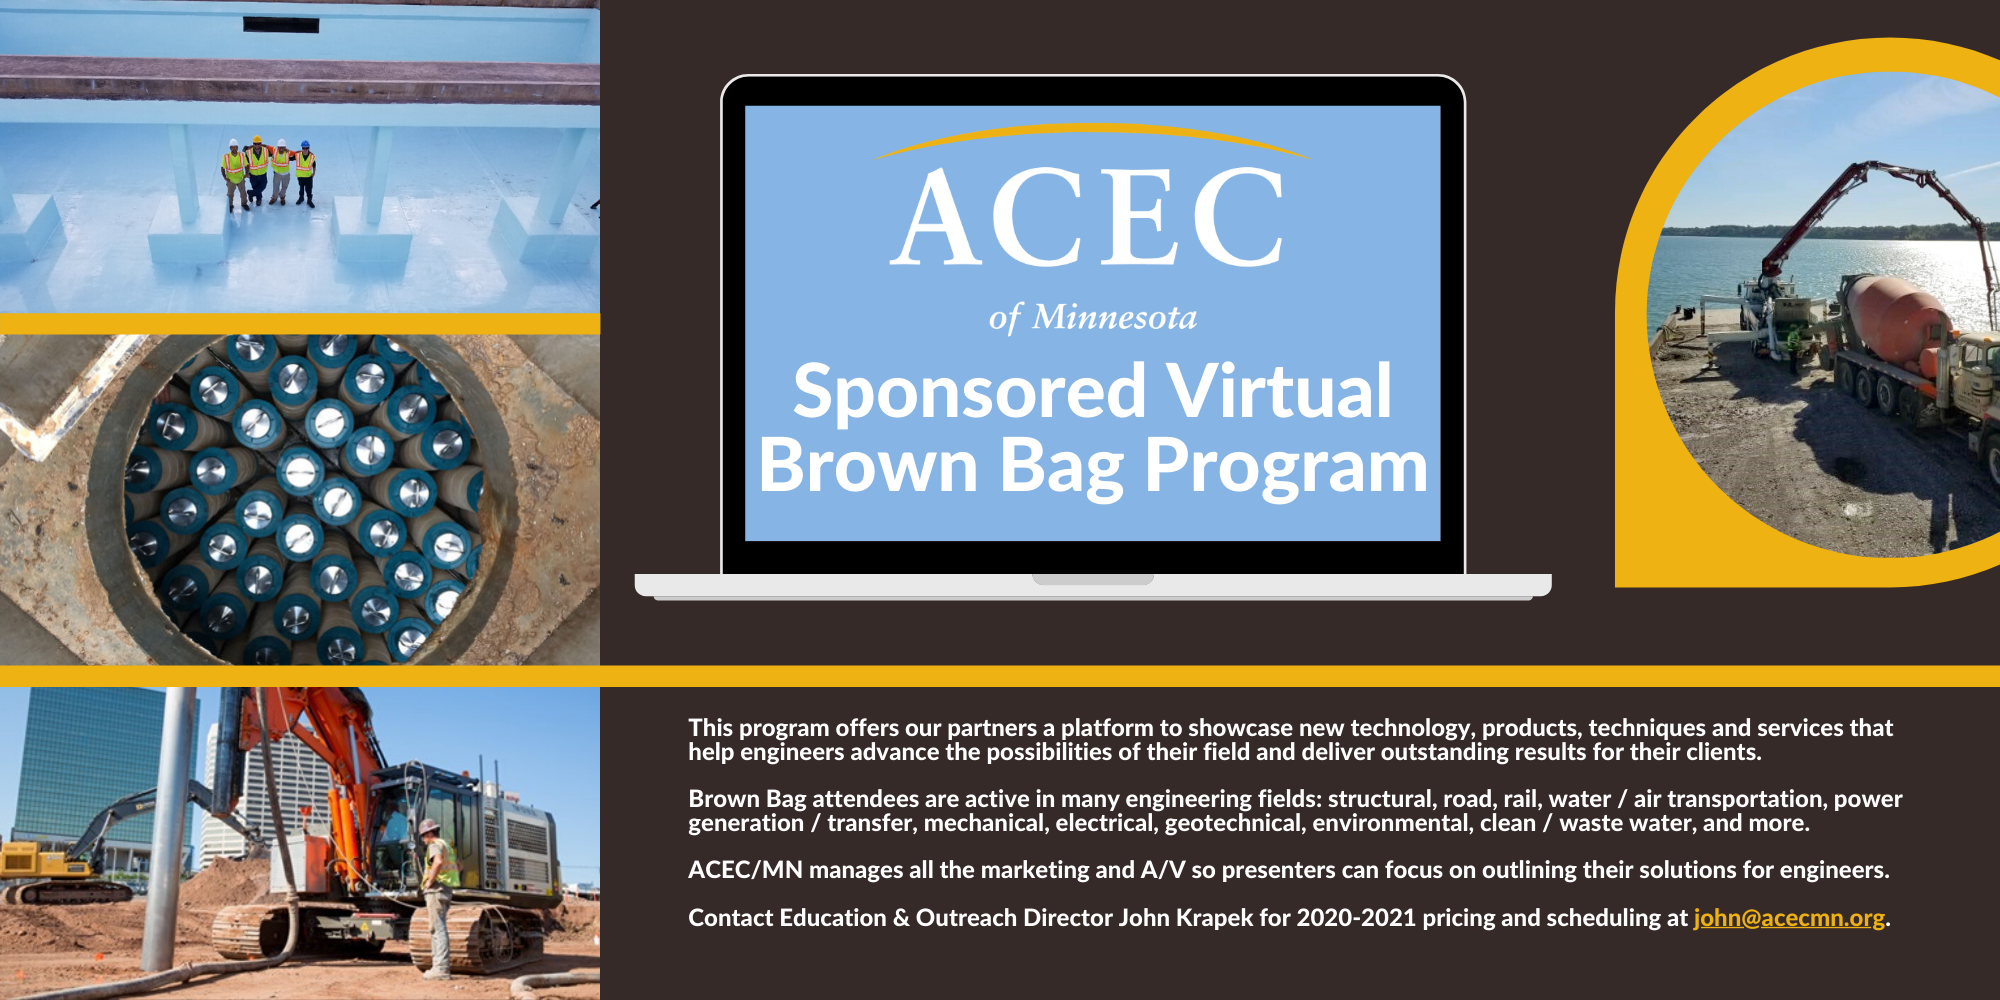 ACEC_MN Virtual Brown Bag program (5)